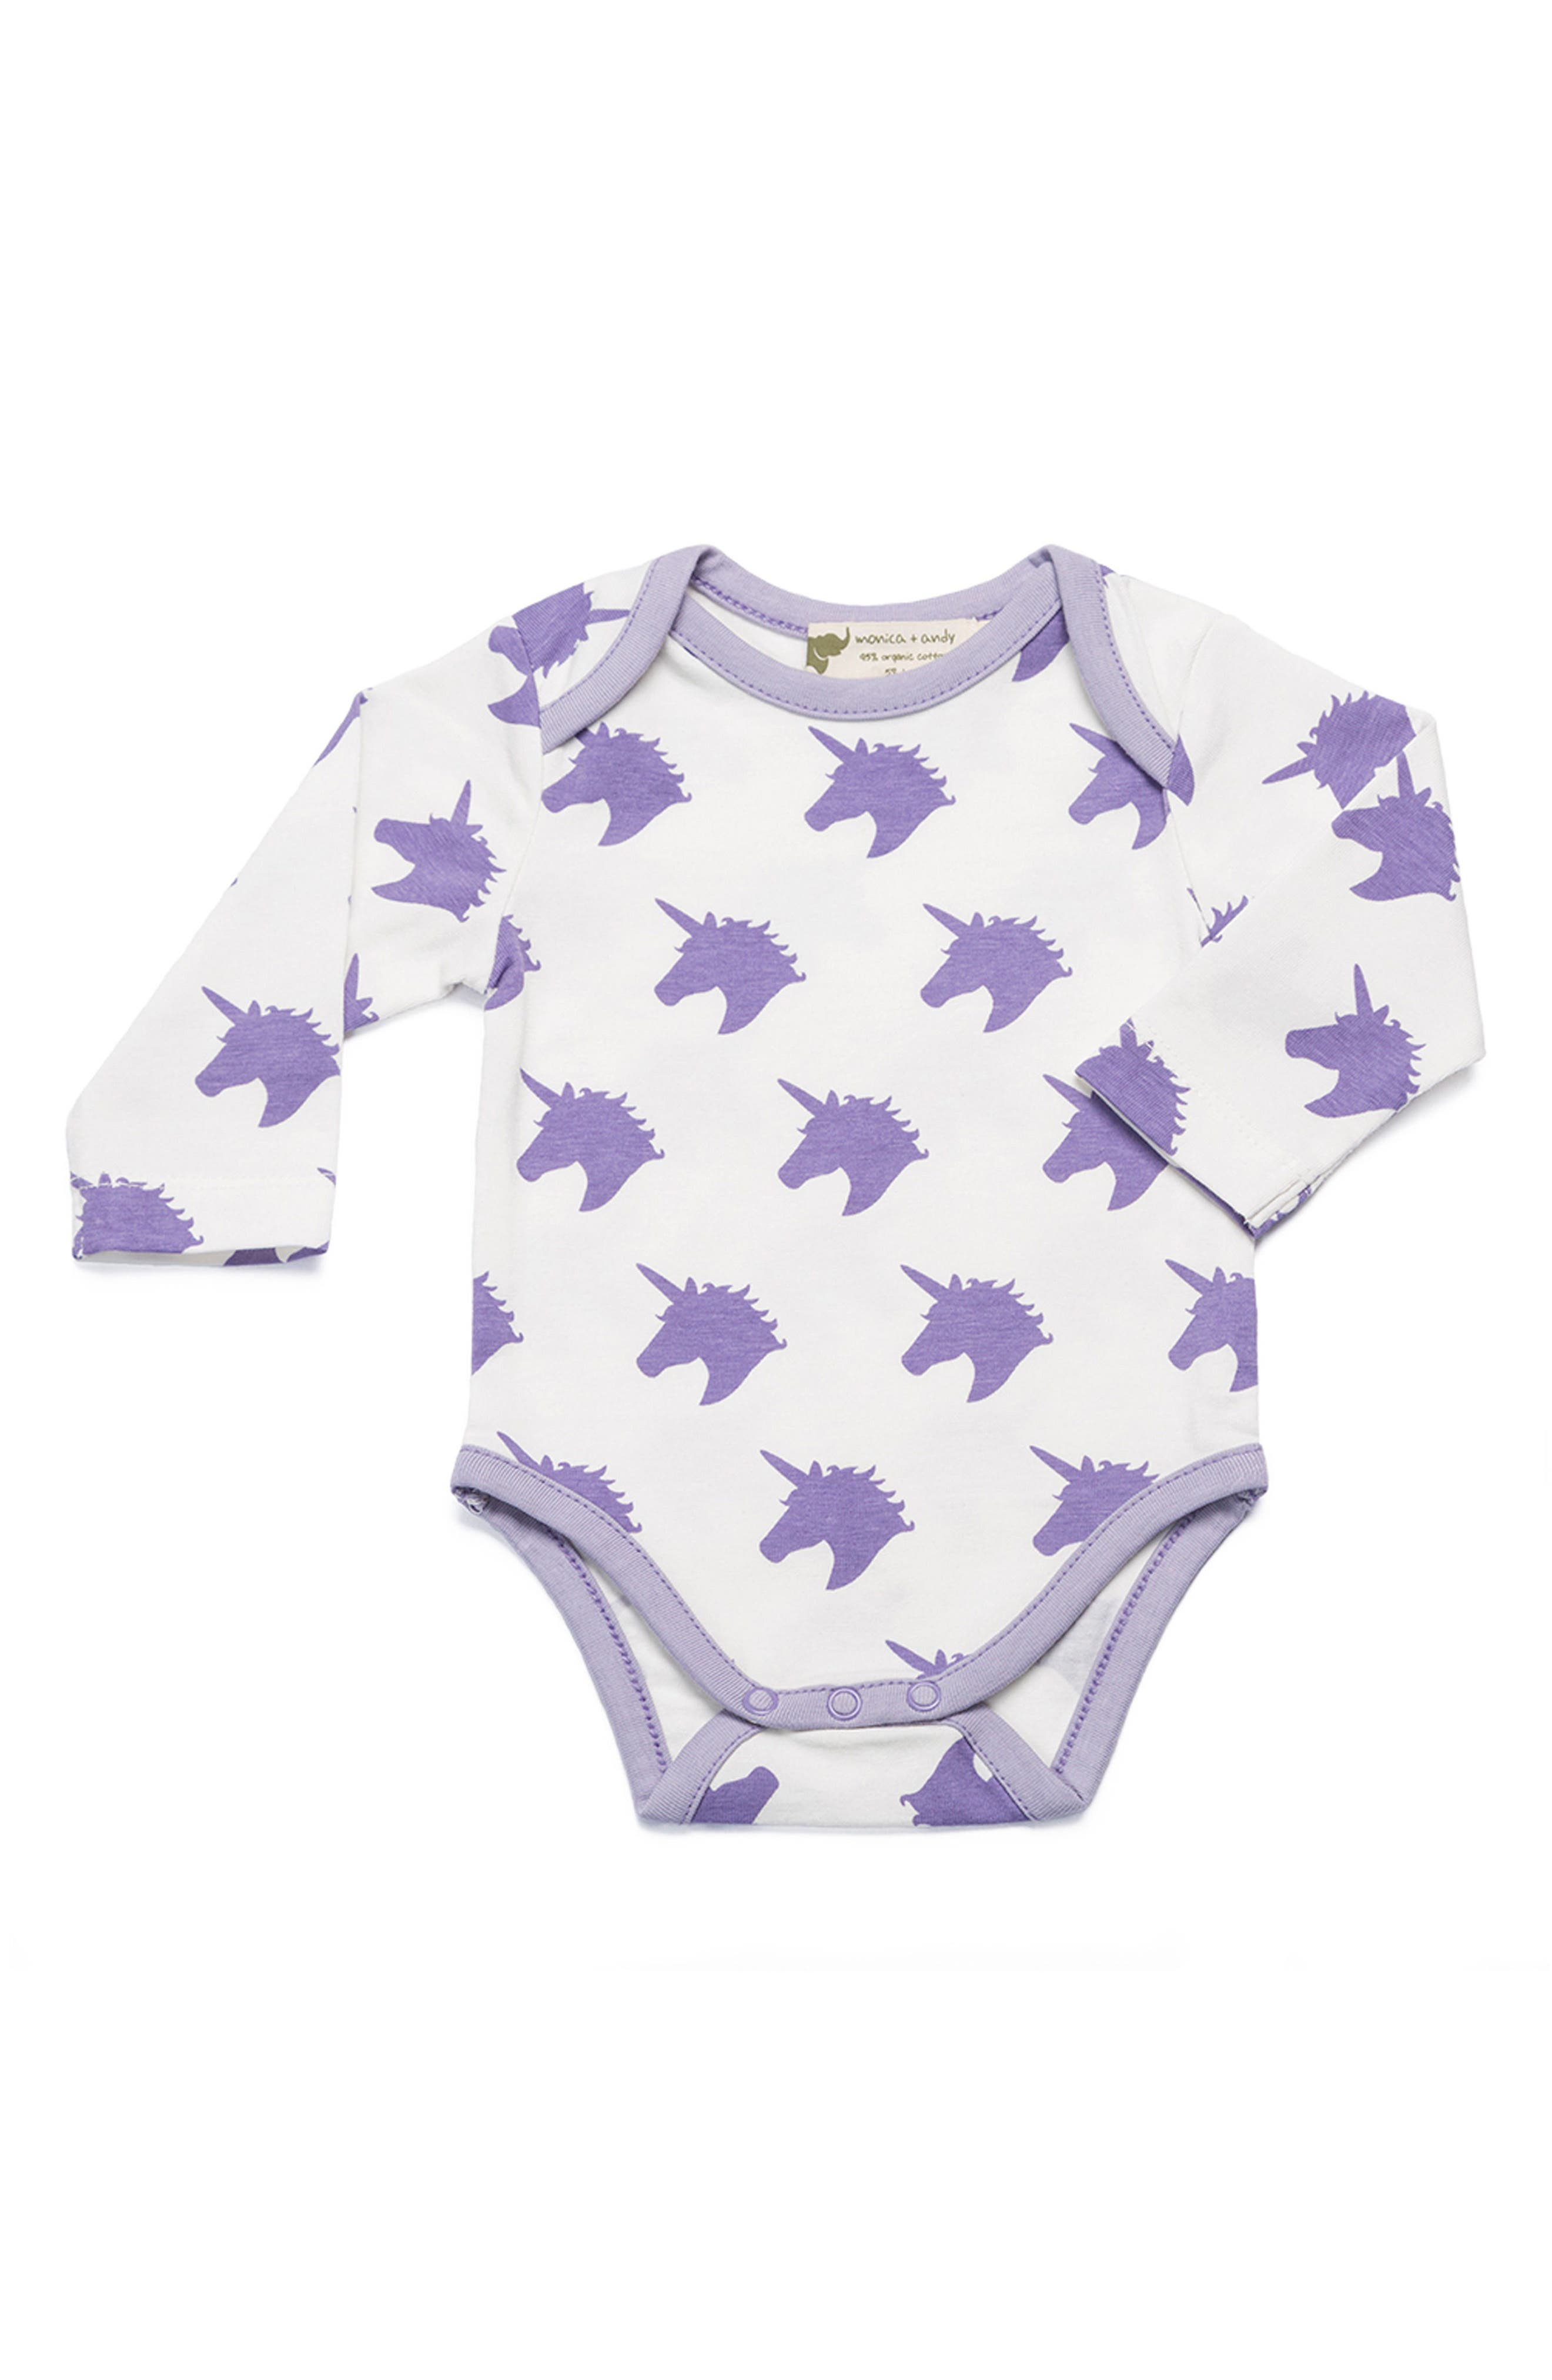 Monica + Andy Jack and Jill Bodysuit (Baby Girls)